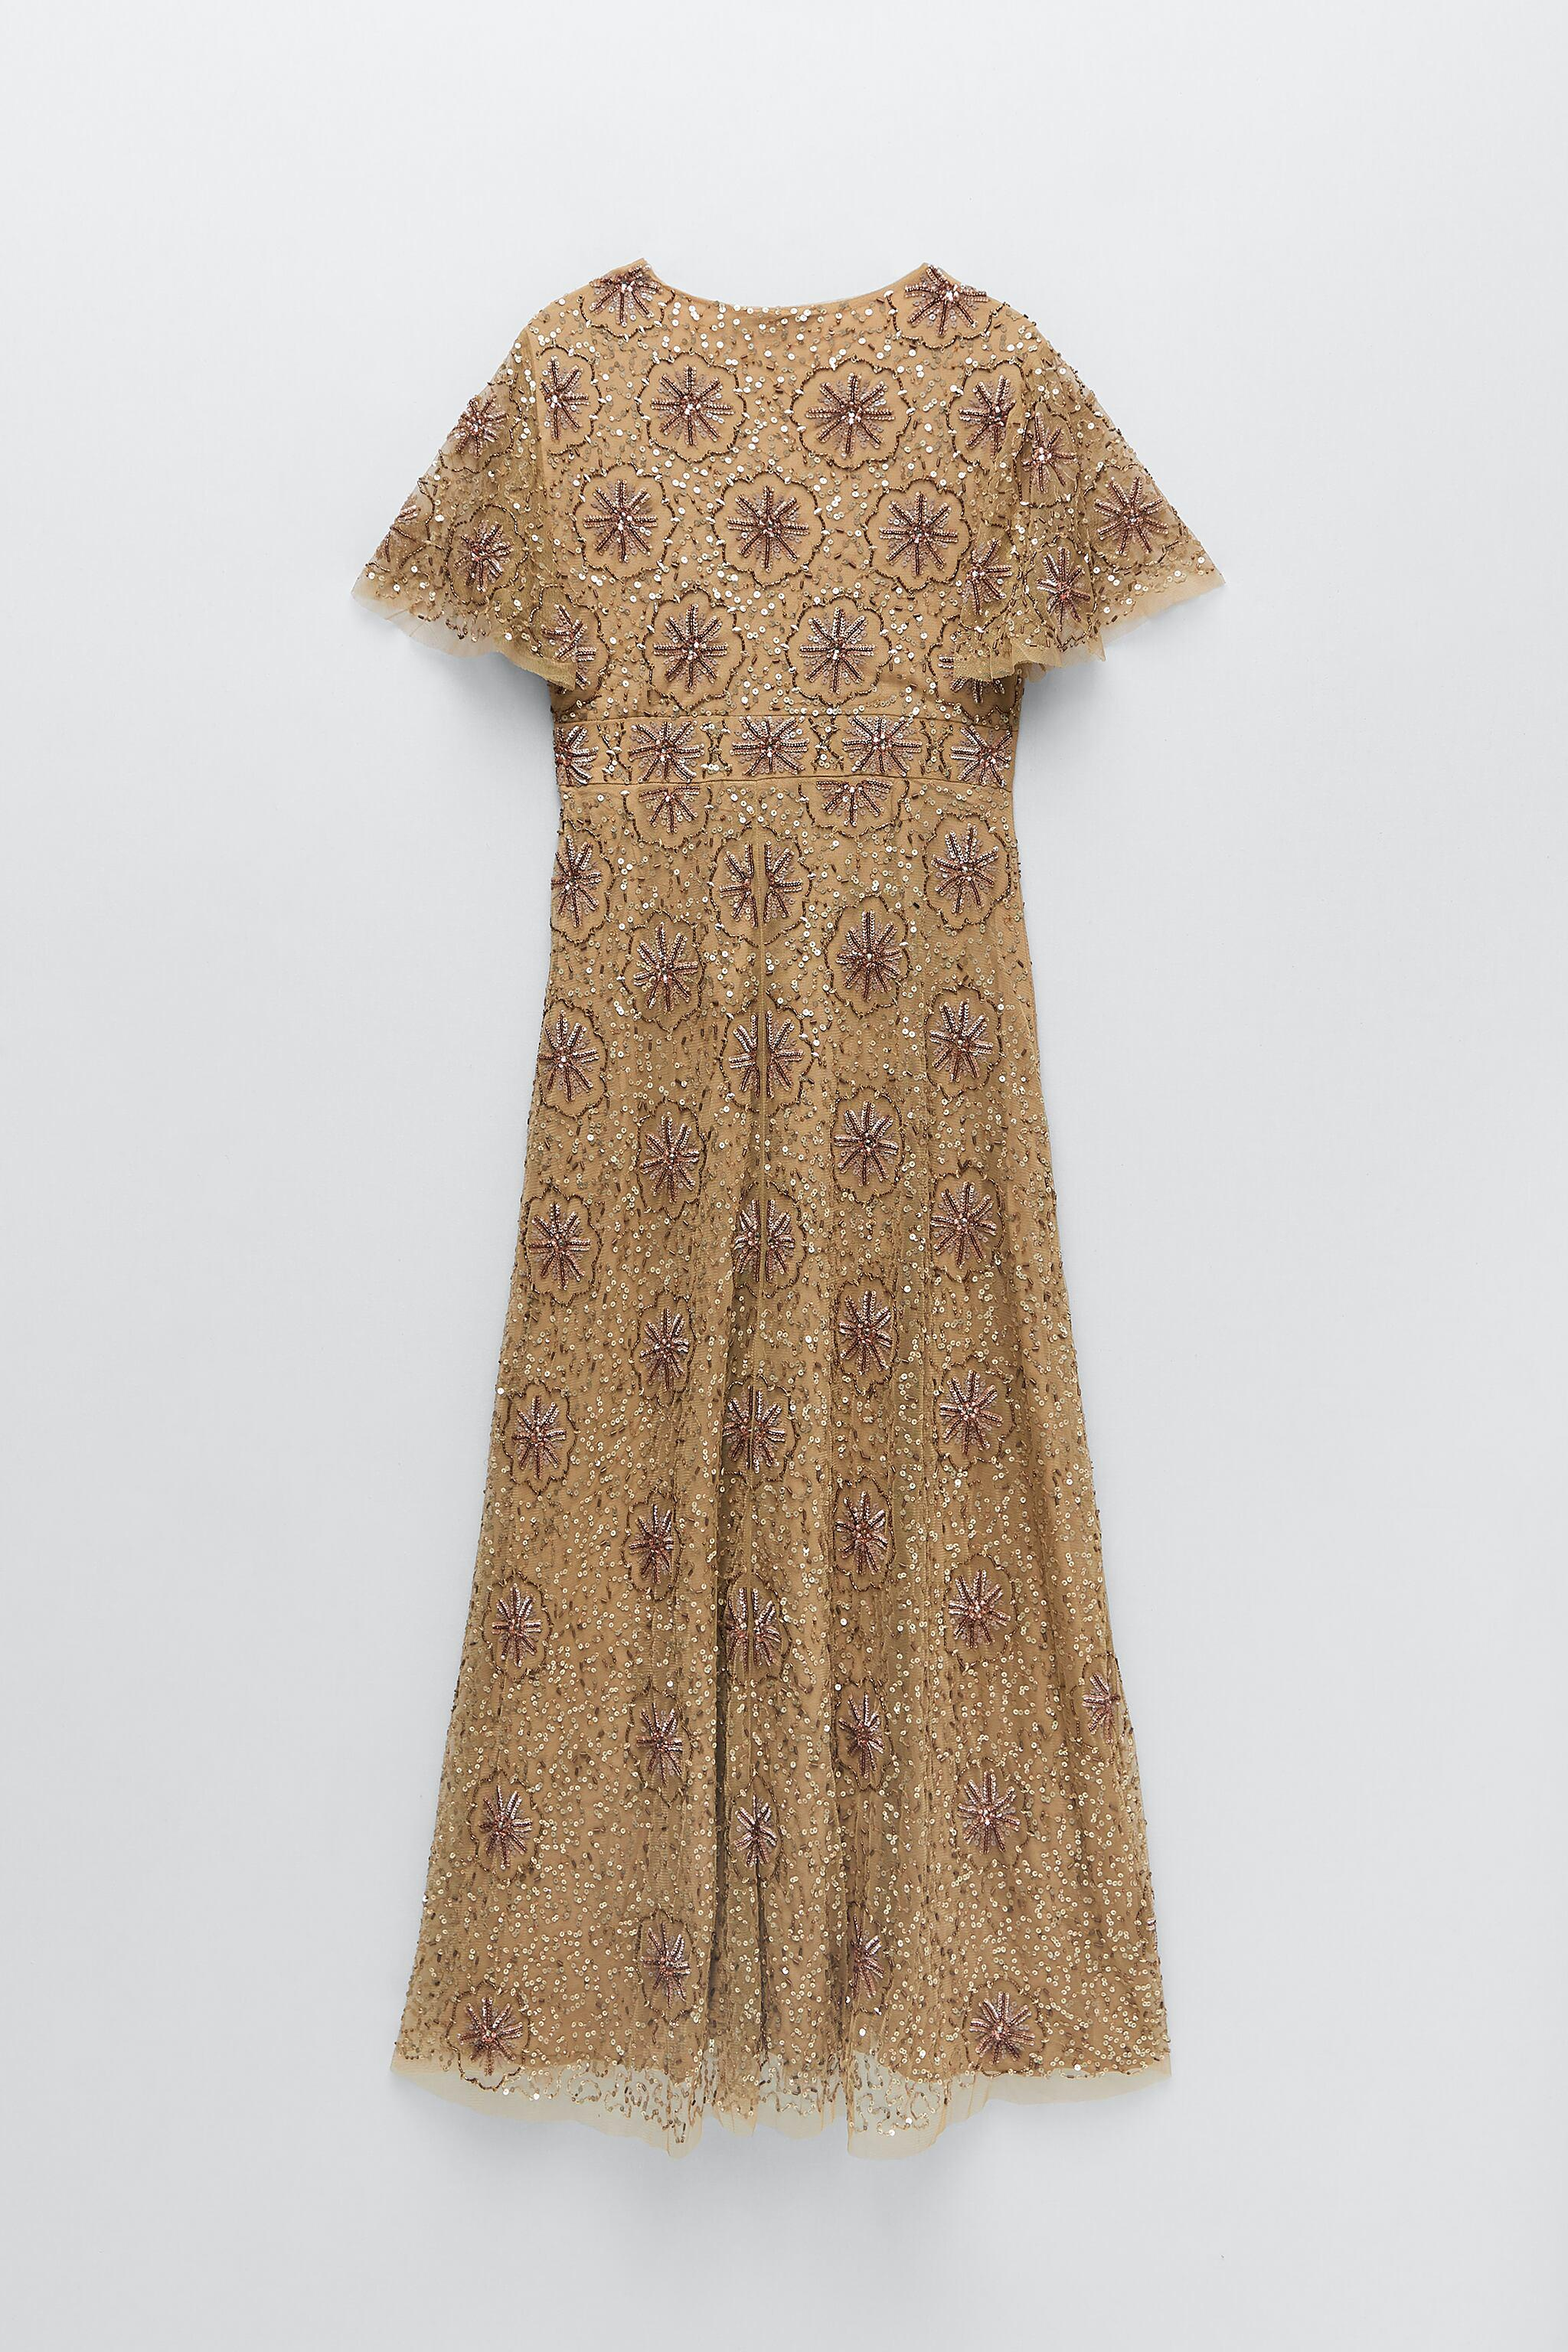 BEADED SPECIAL EDITION KNIT DRESS 7